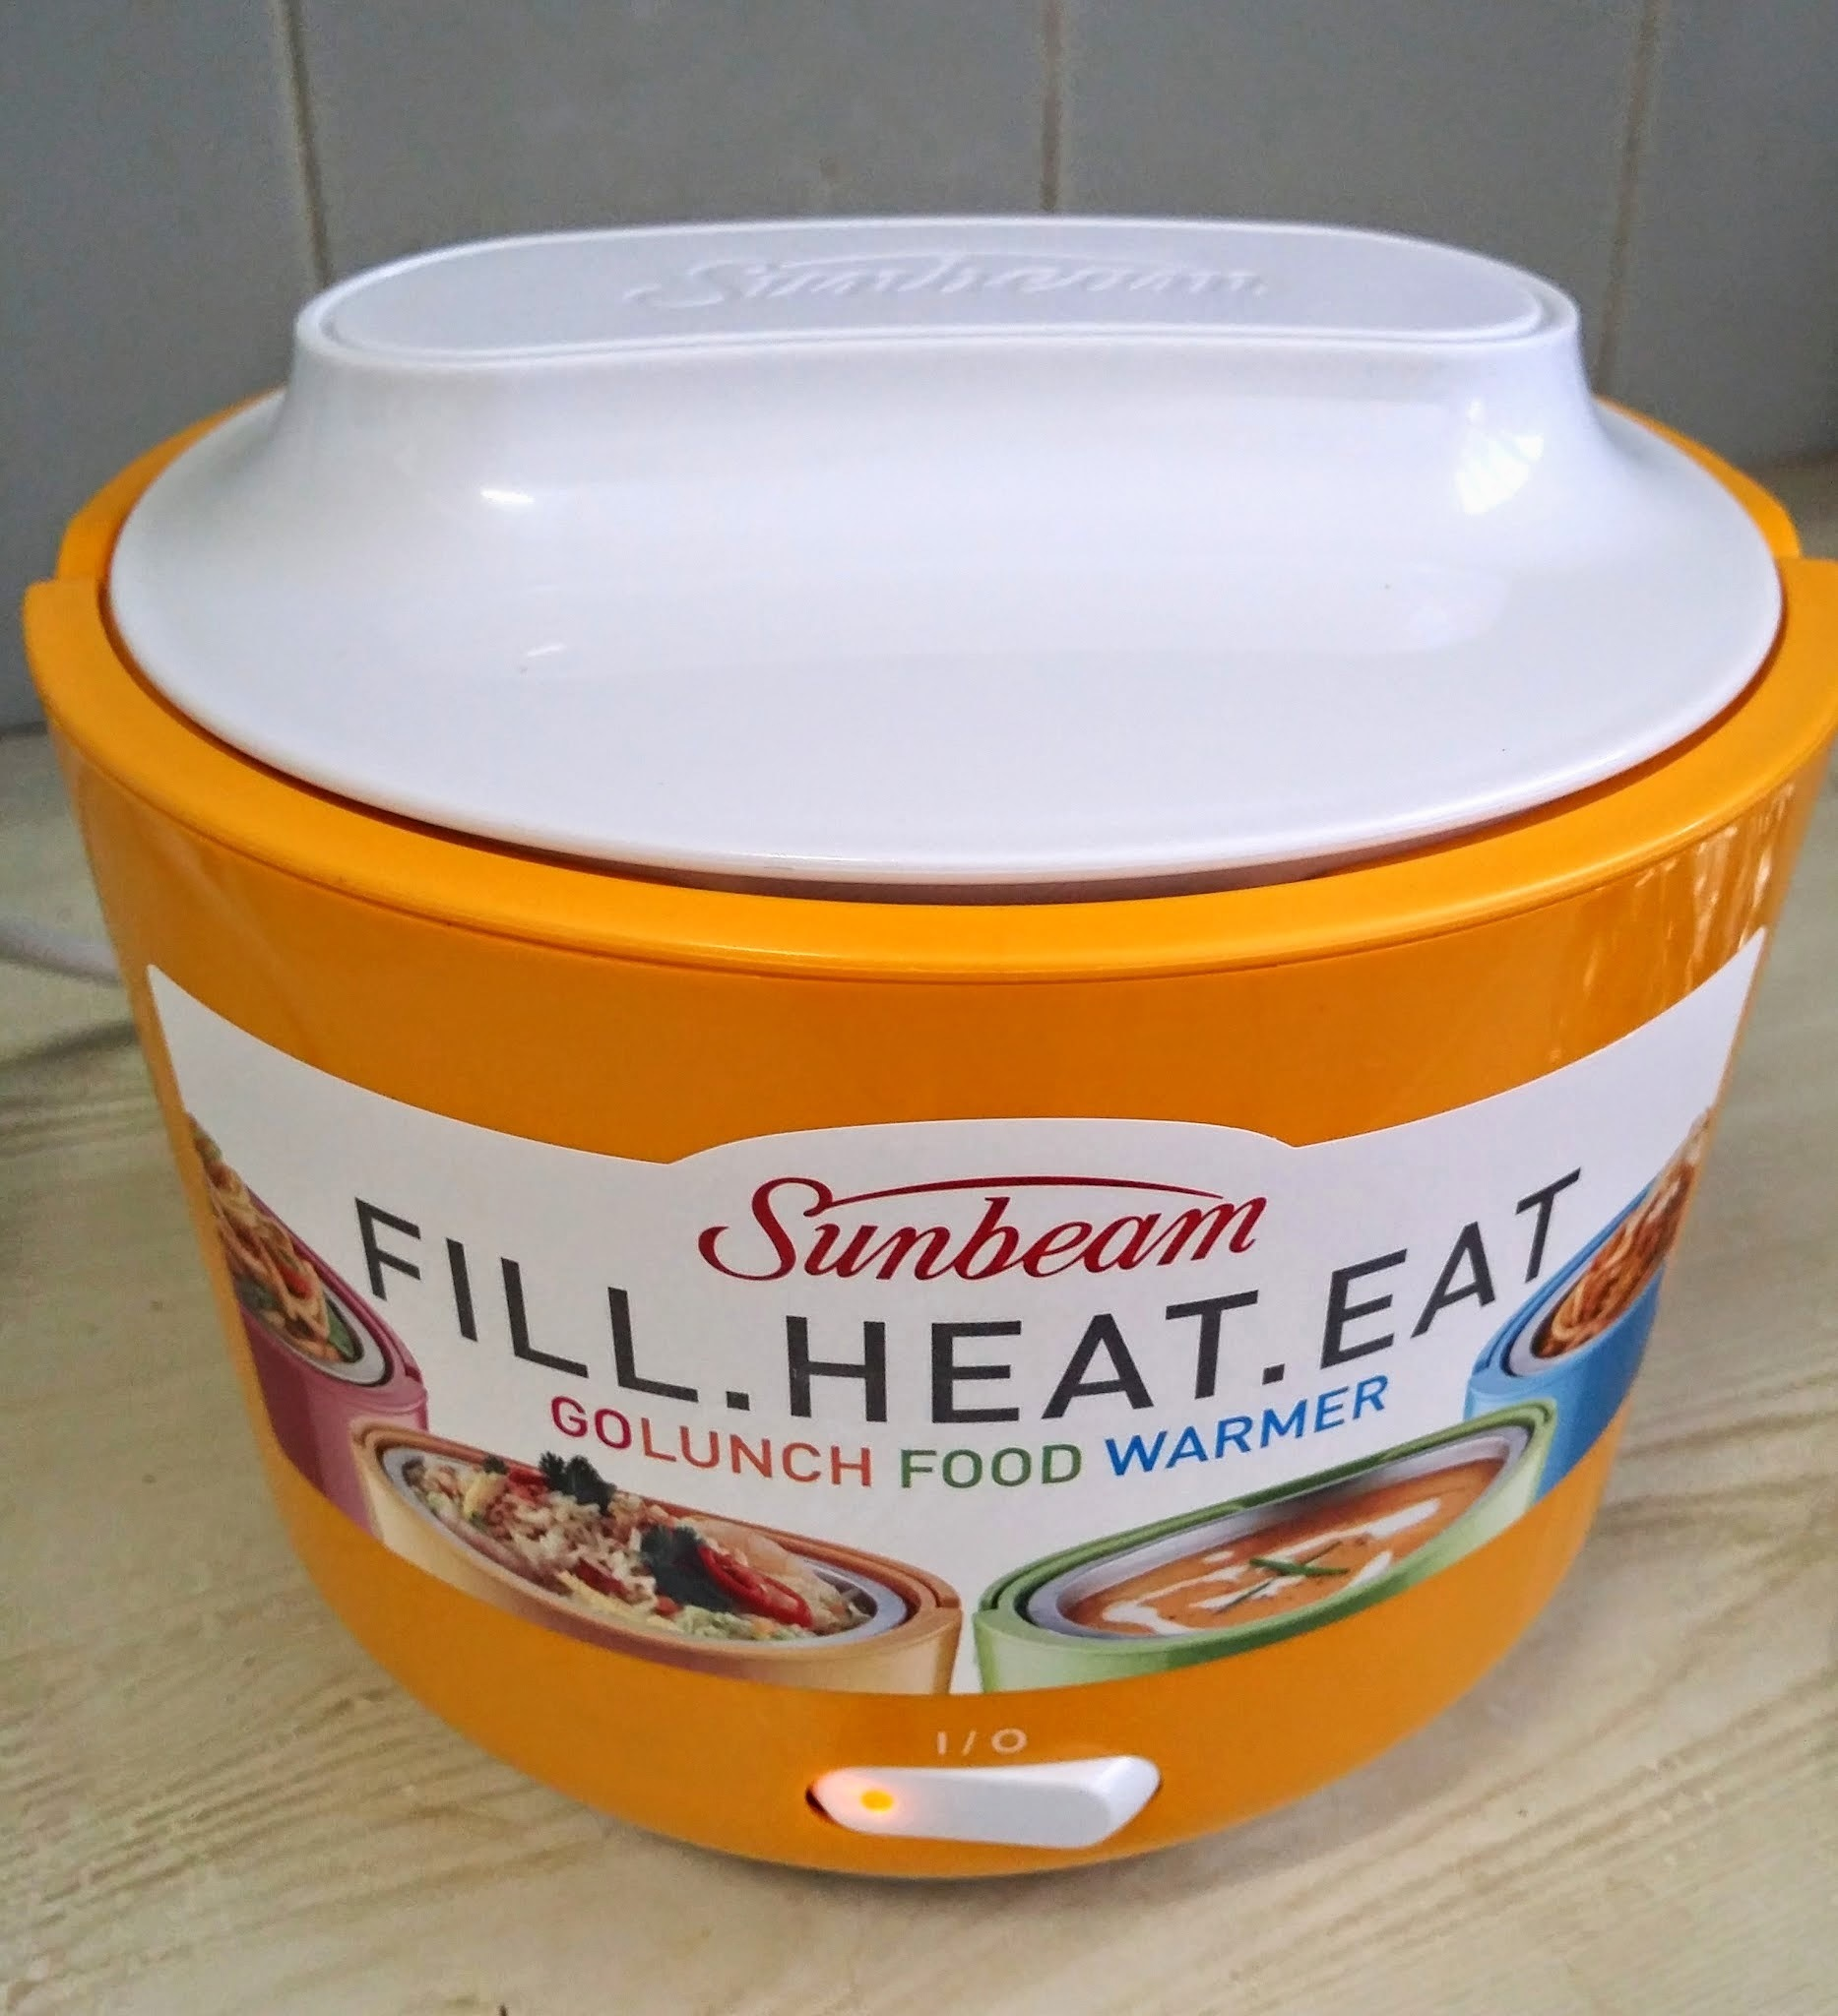 Sunbeam GoLunch Food Warmer - Product Review.